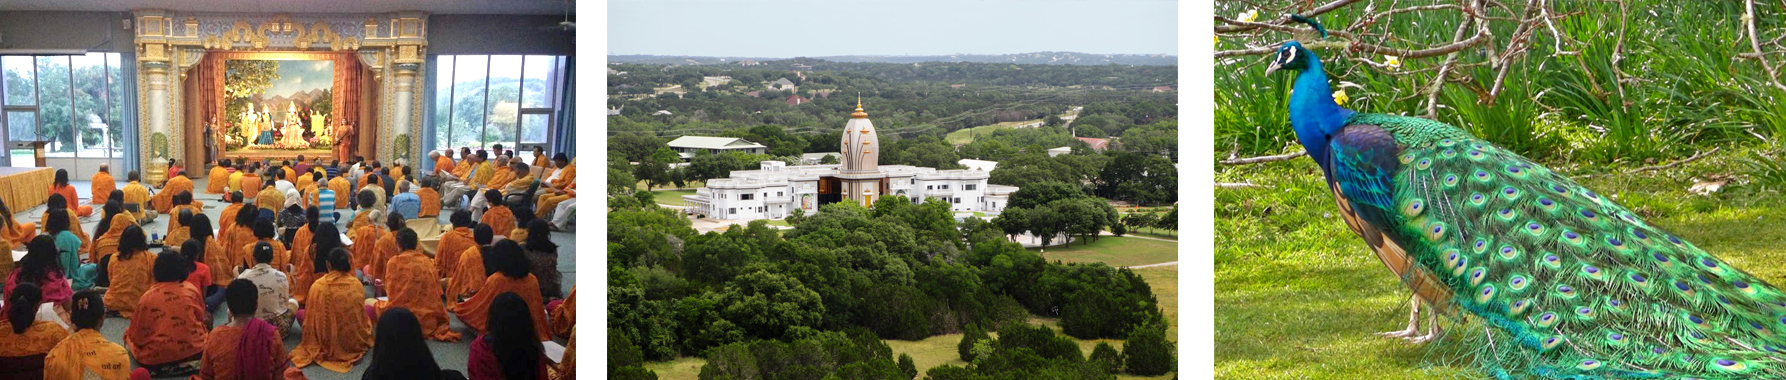 Texas Yoga Retreat Ashram